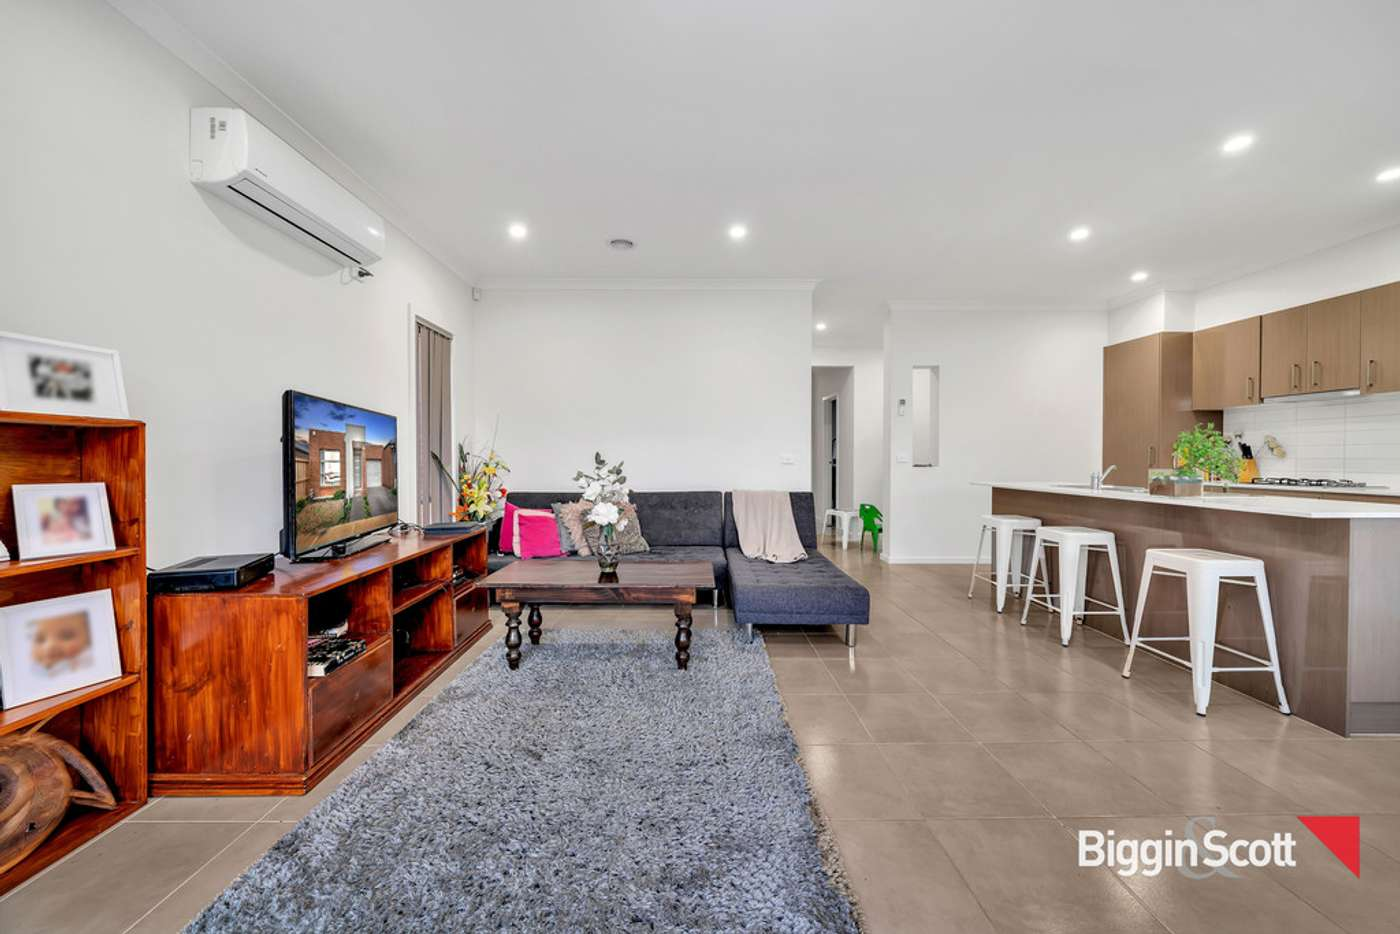 Fifth view of Homely house listing, 3 Cheer Terrace, Tarneit VIC 3029